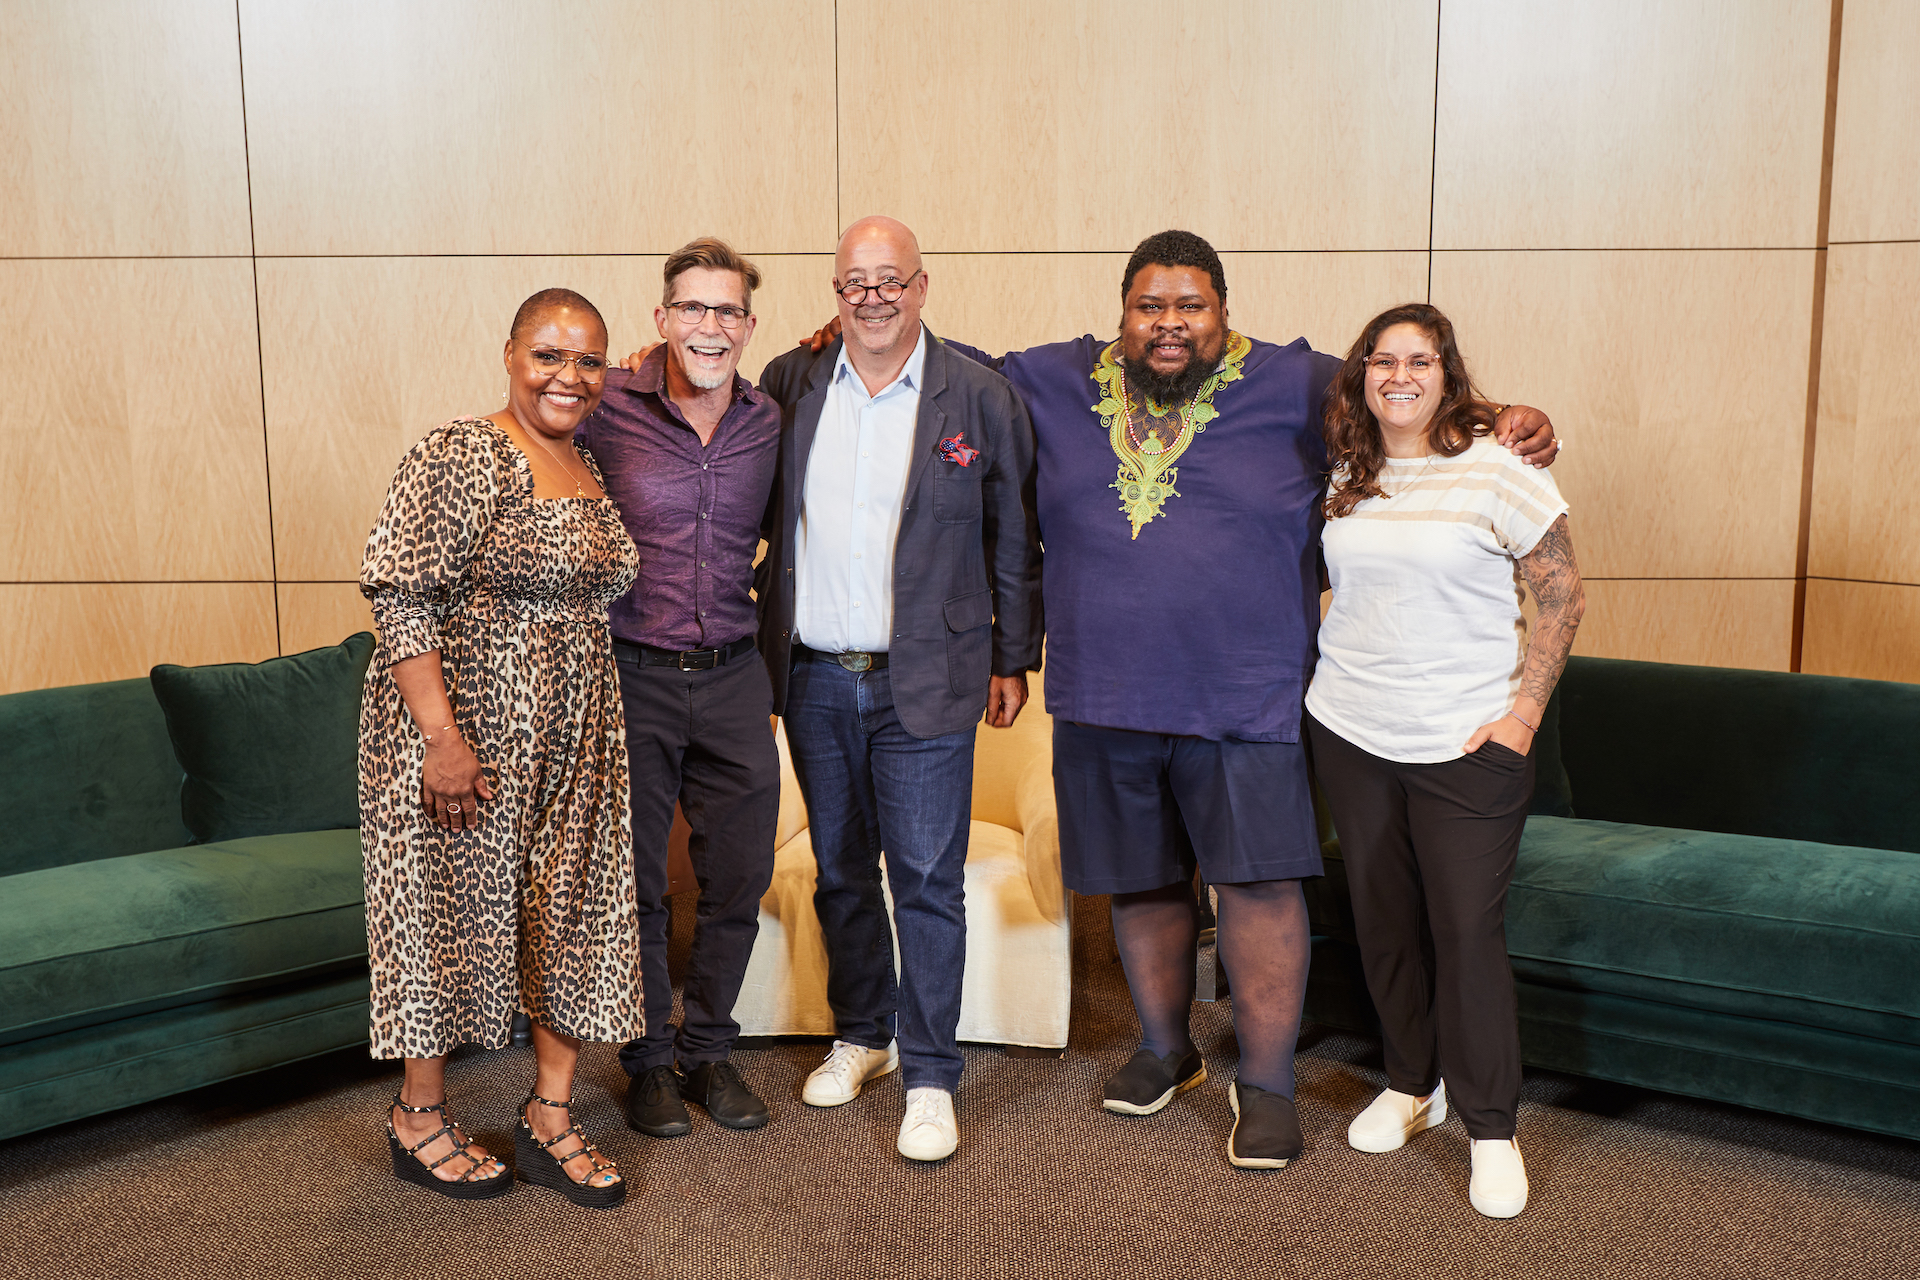 """""""Conversations at Copia"""" panelists (left to right) Tanya Holland, Rick Bayless, Michael Twitty, and Emiliana Puyana with host Andrew Zimmern (center)."""